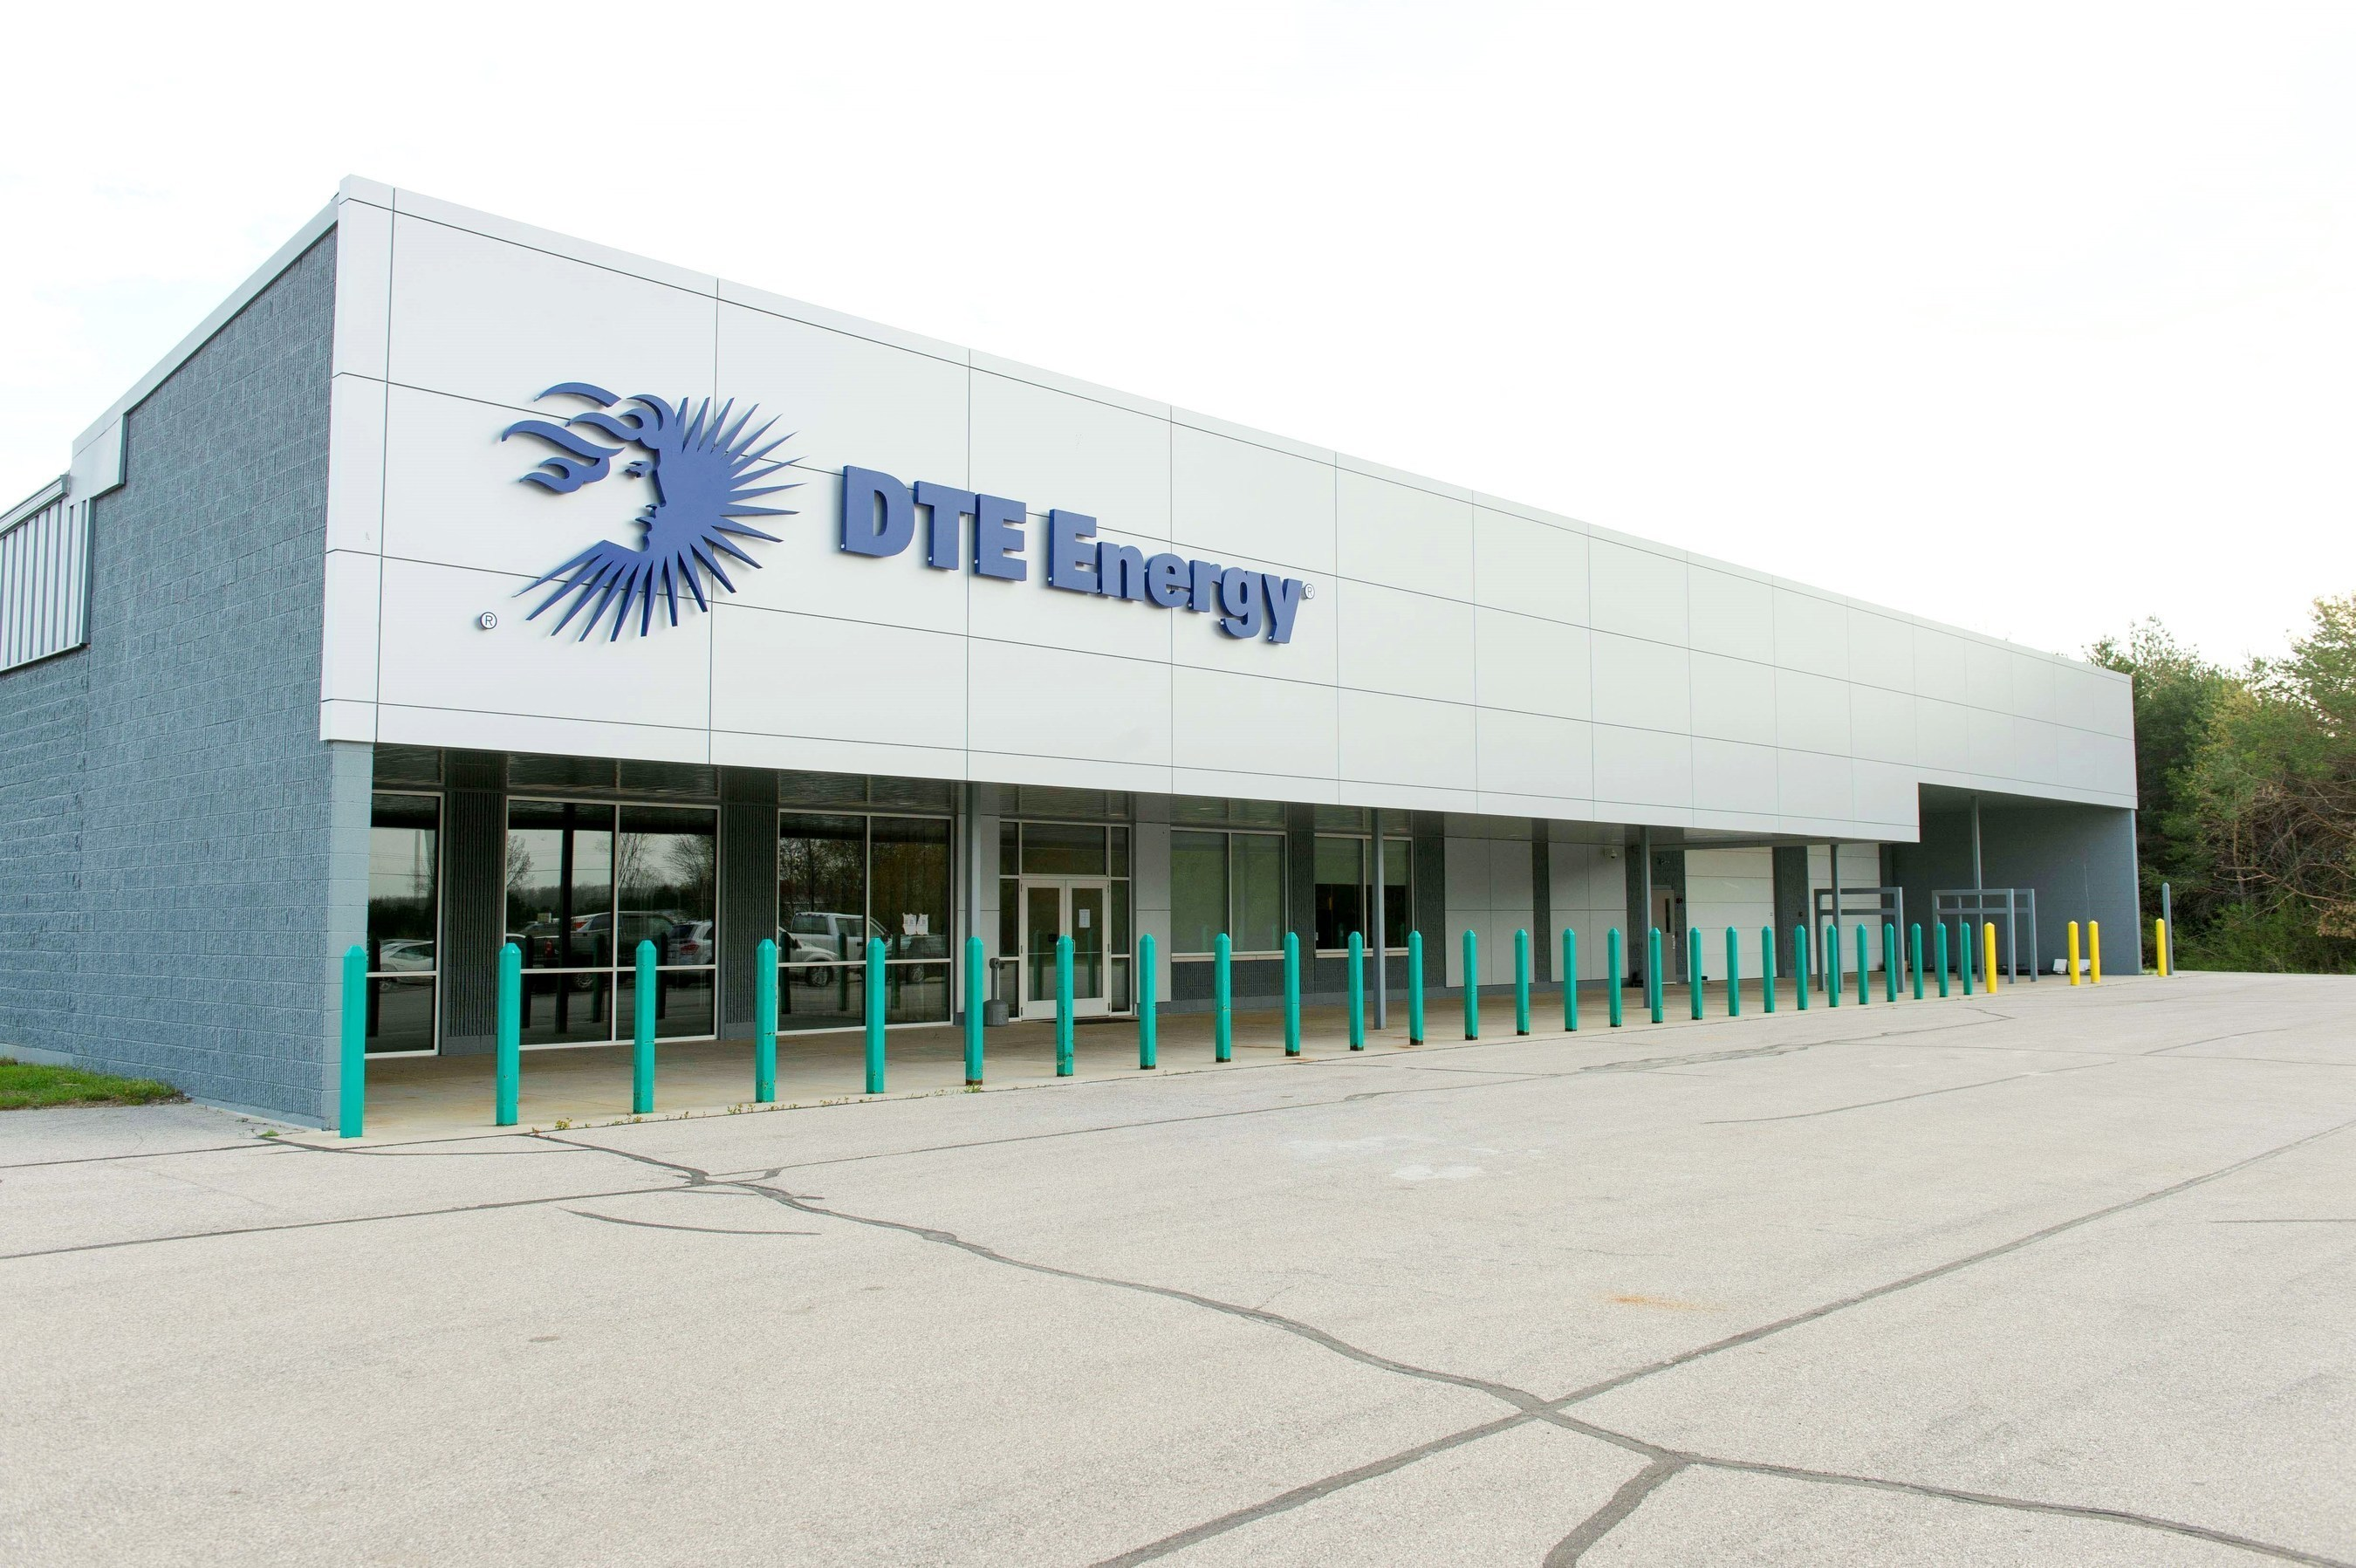 DTE Energy brings 25 energy jobs to Huron County